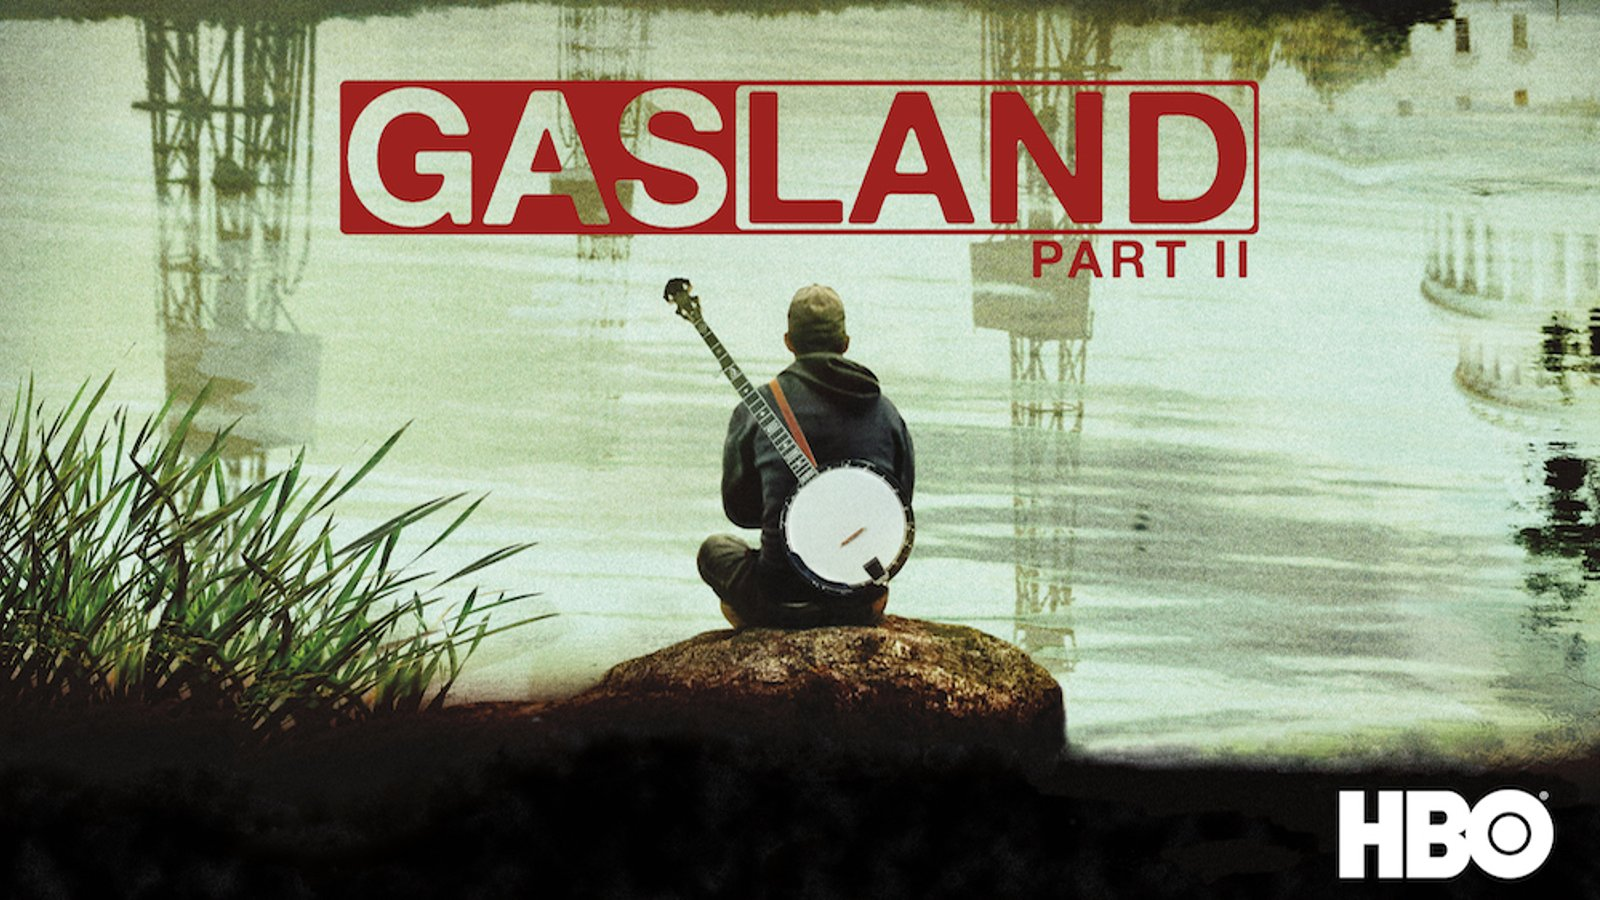 Gasland Part II - The Dangers of Hydraulic Fracturing